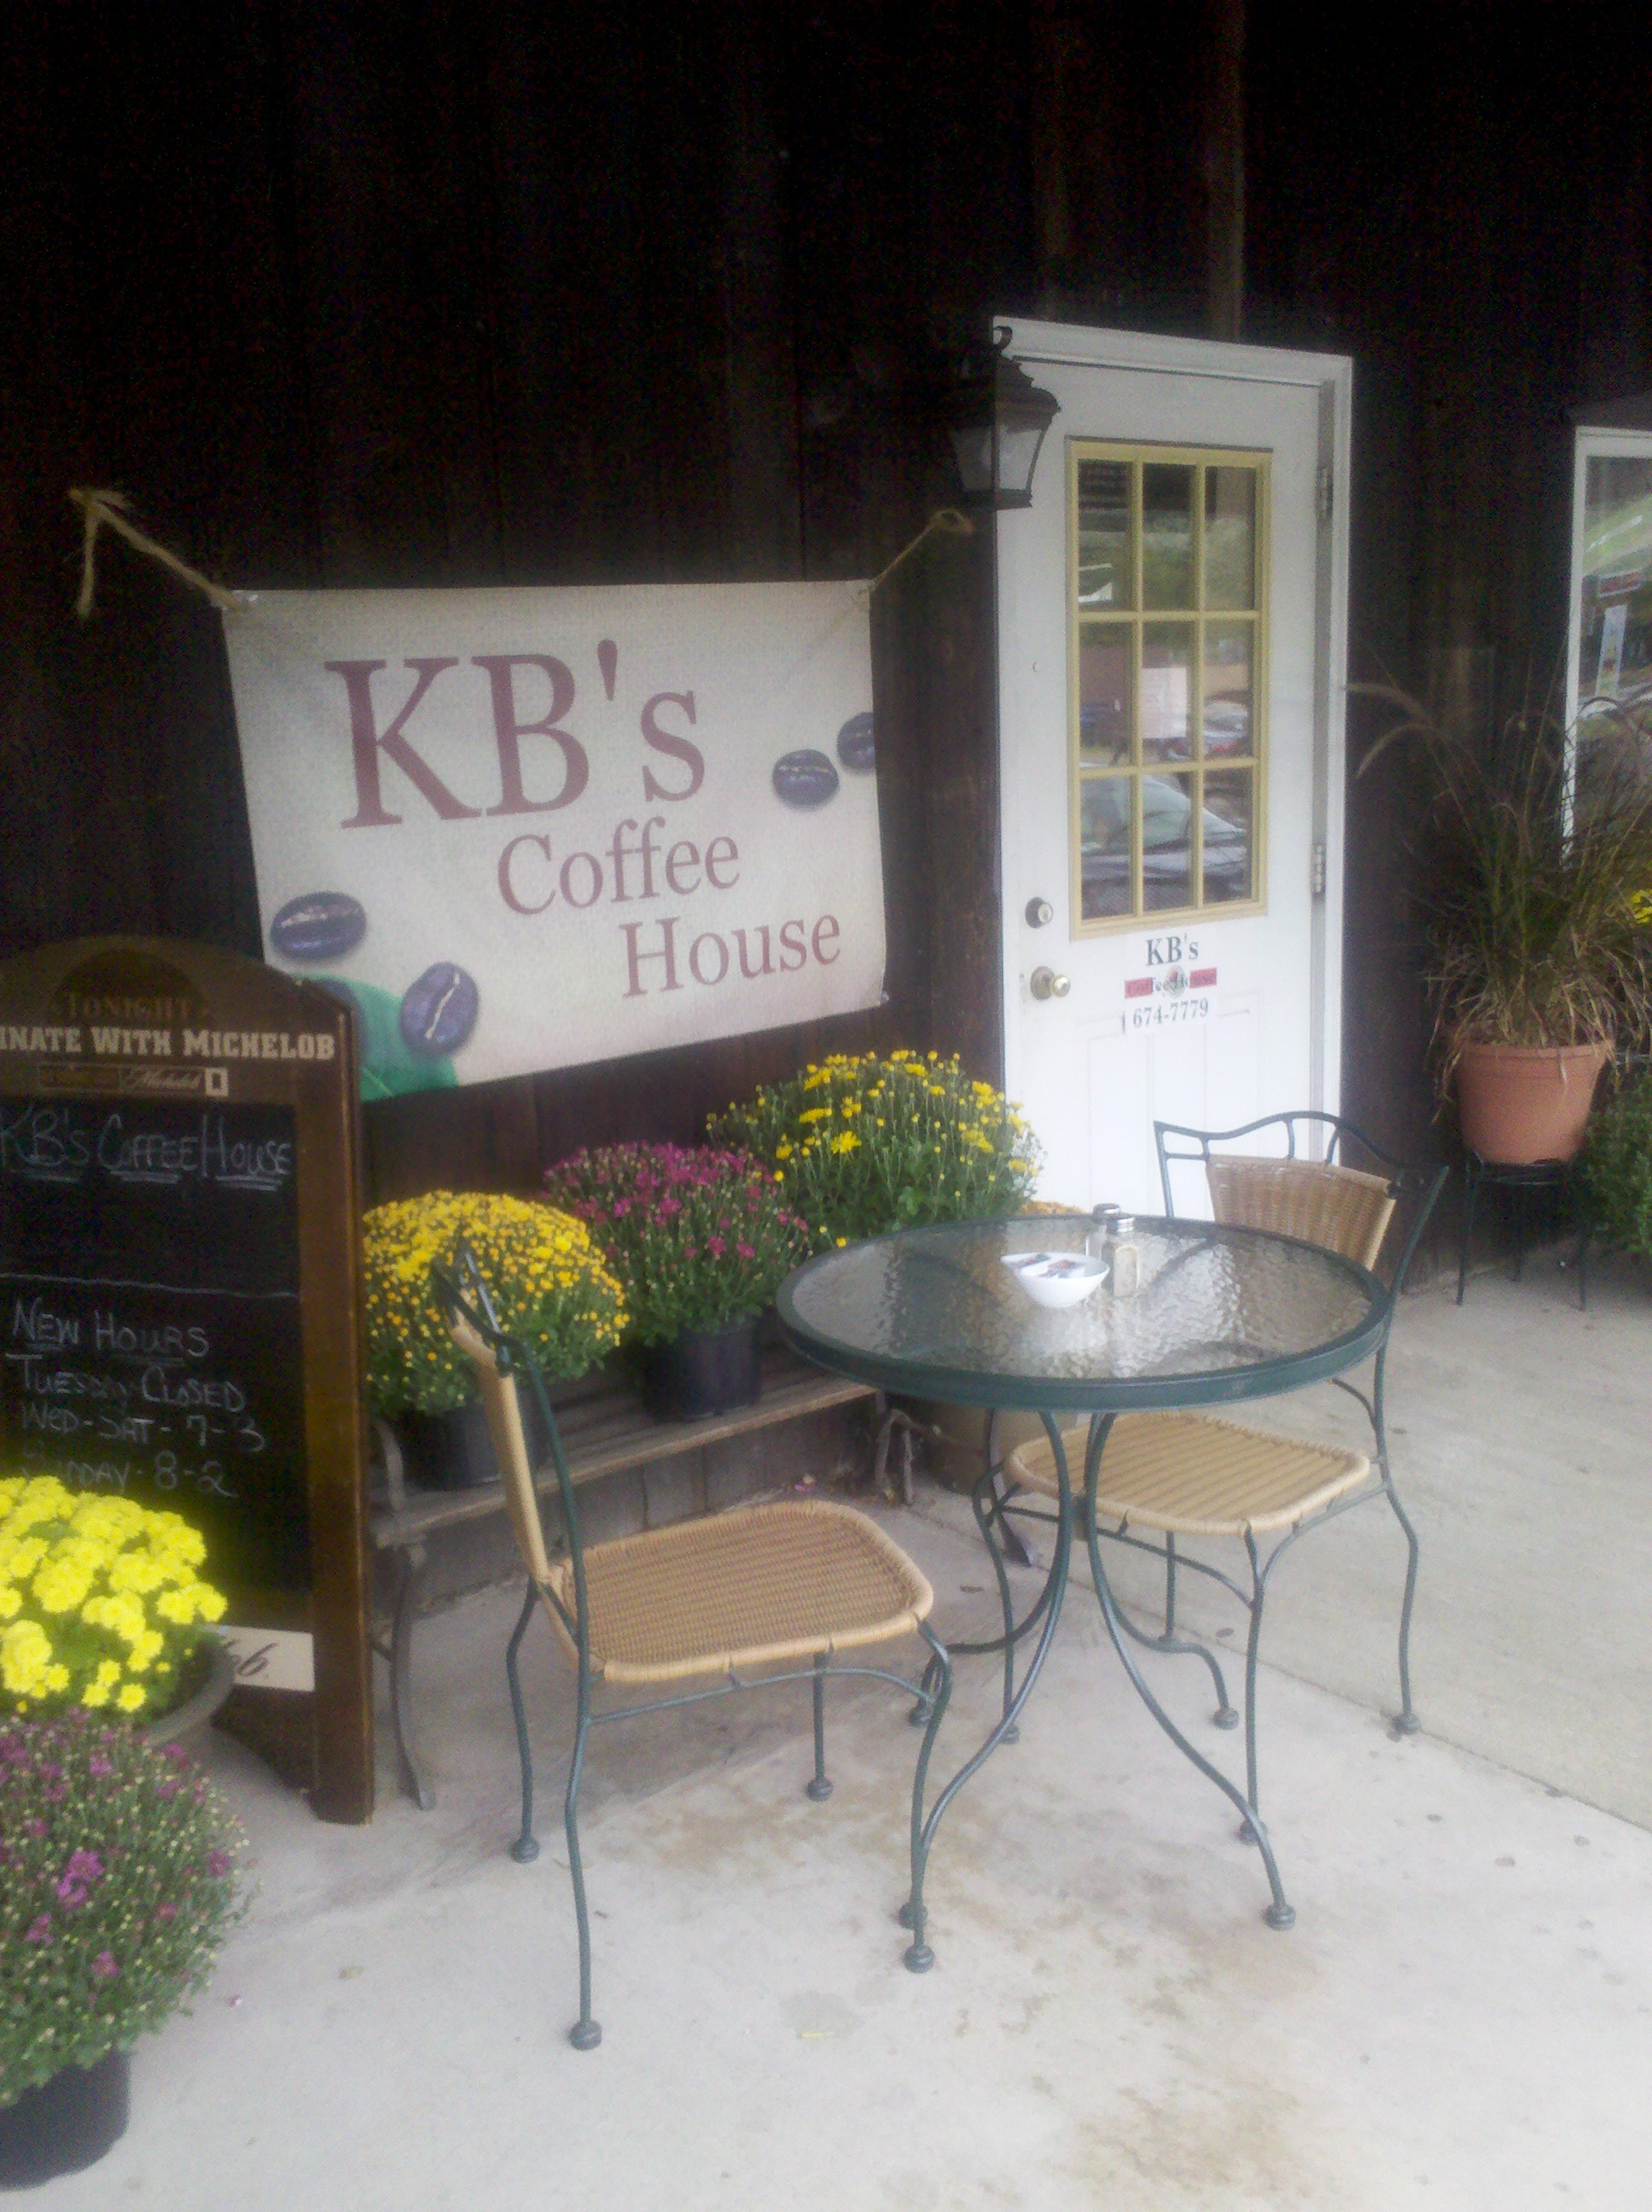 KB's Coffee House